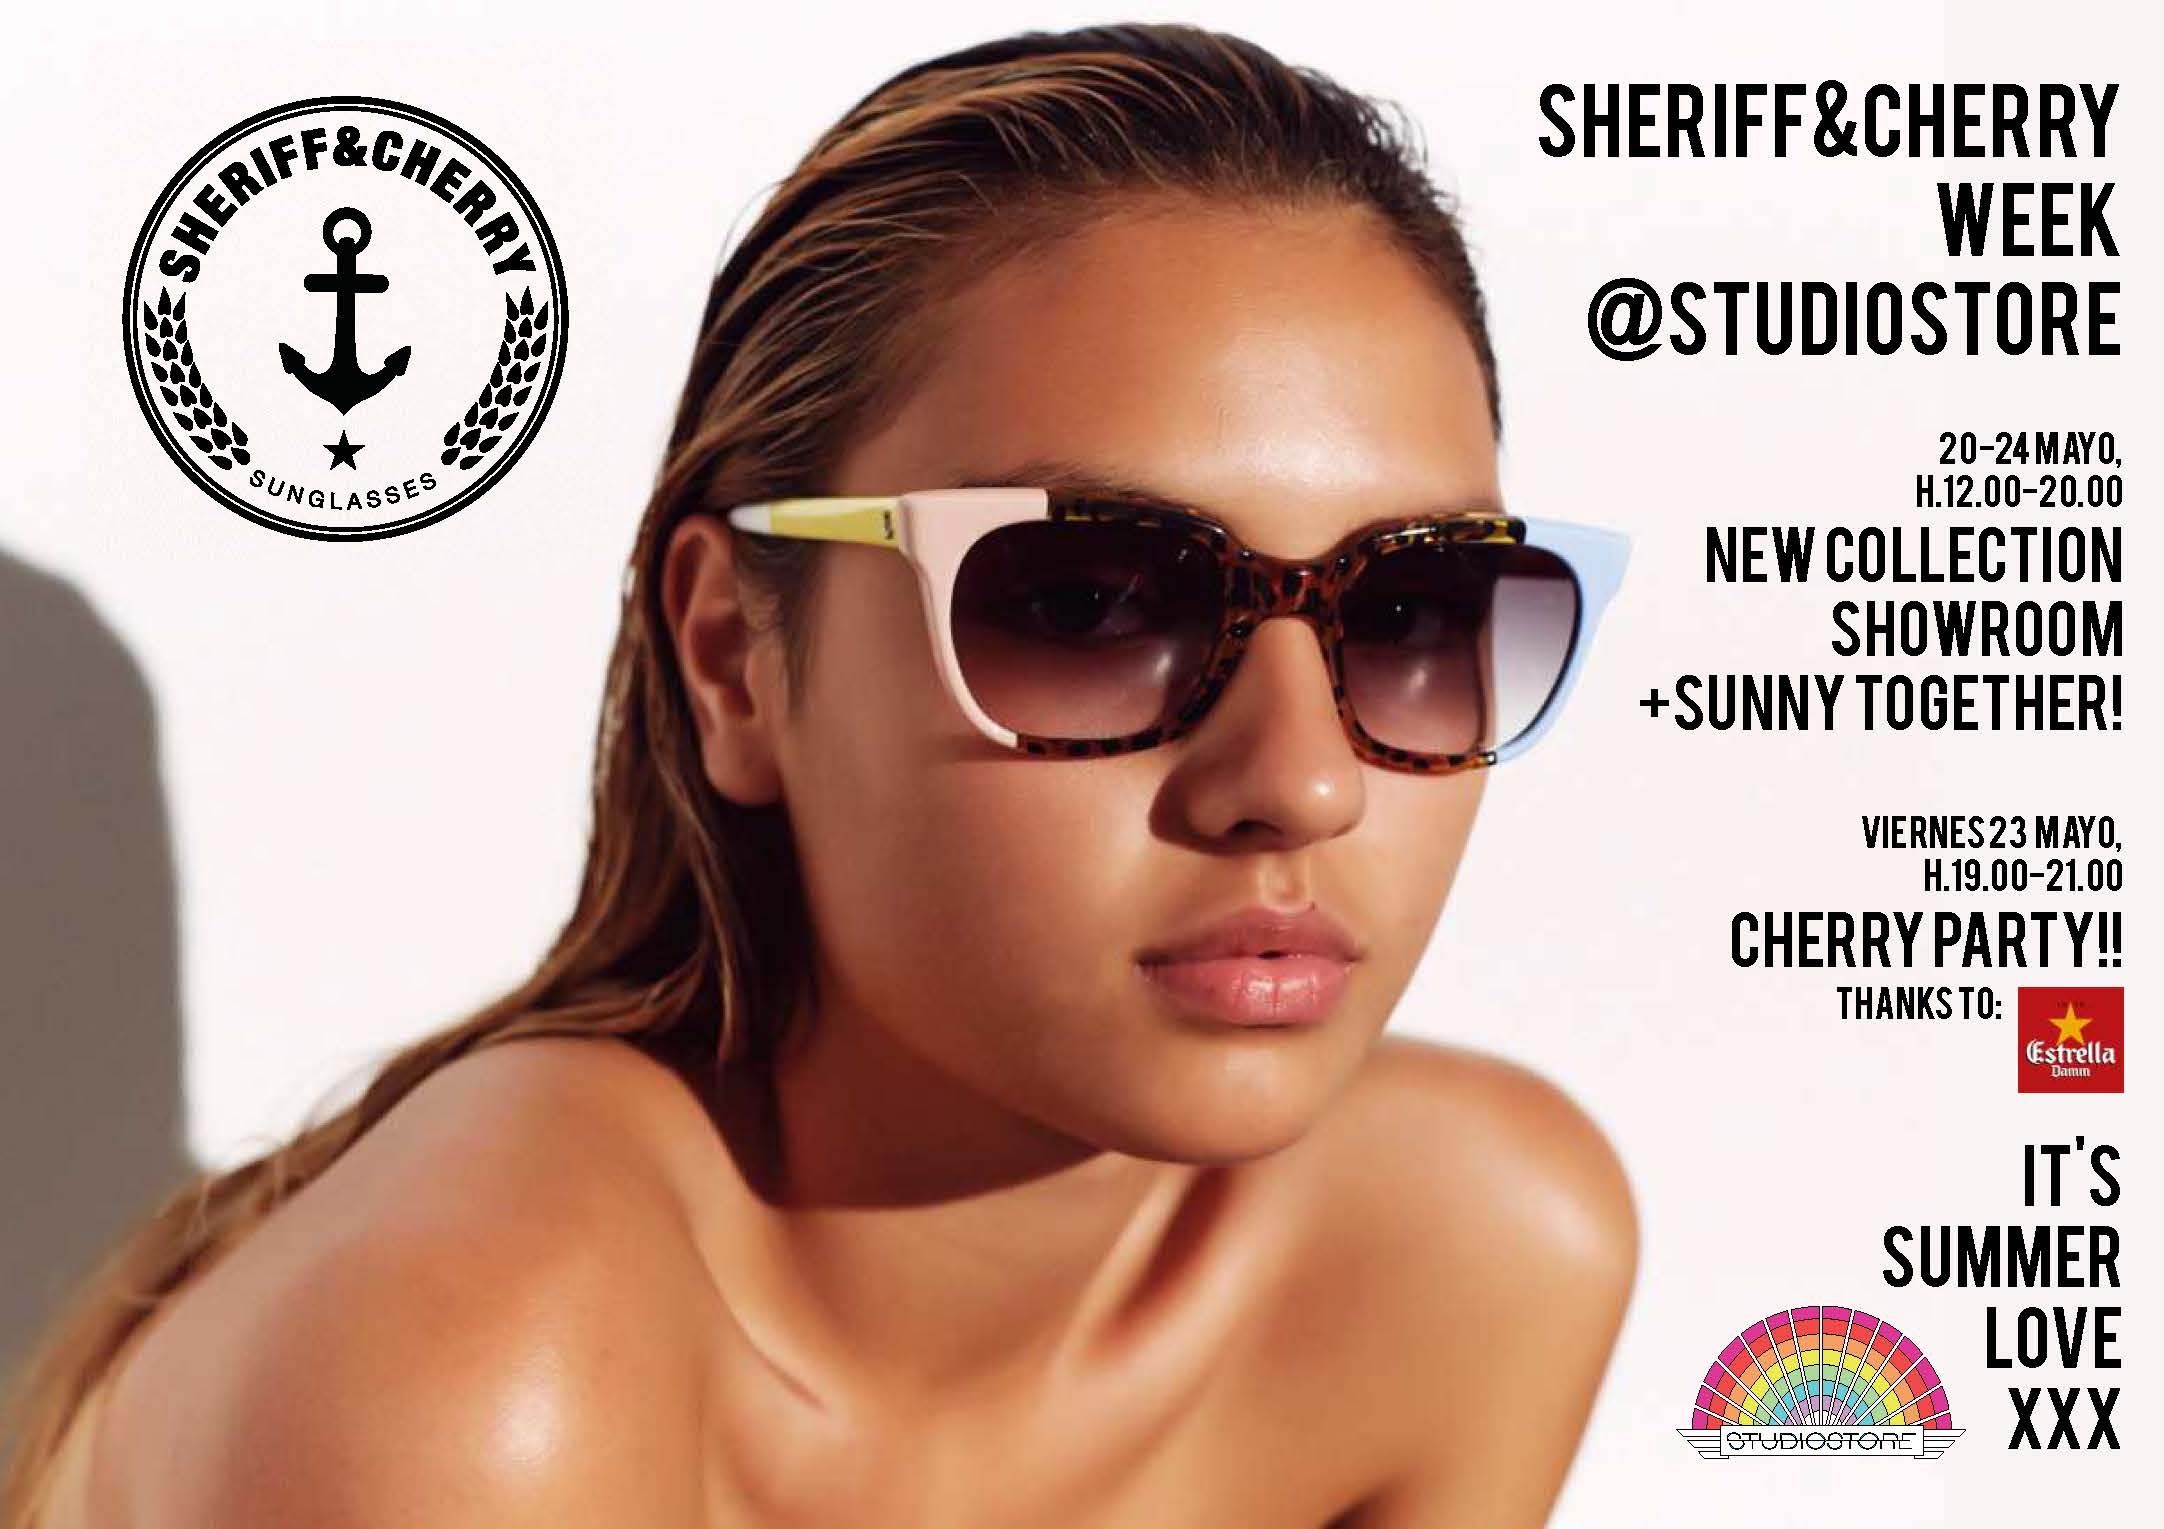 Sheriff & Cherry Showroom and Party